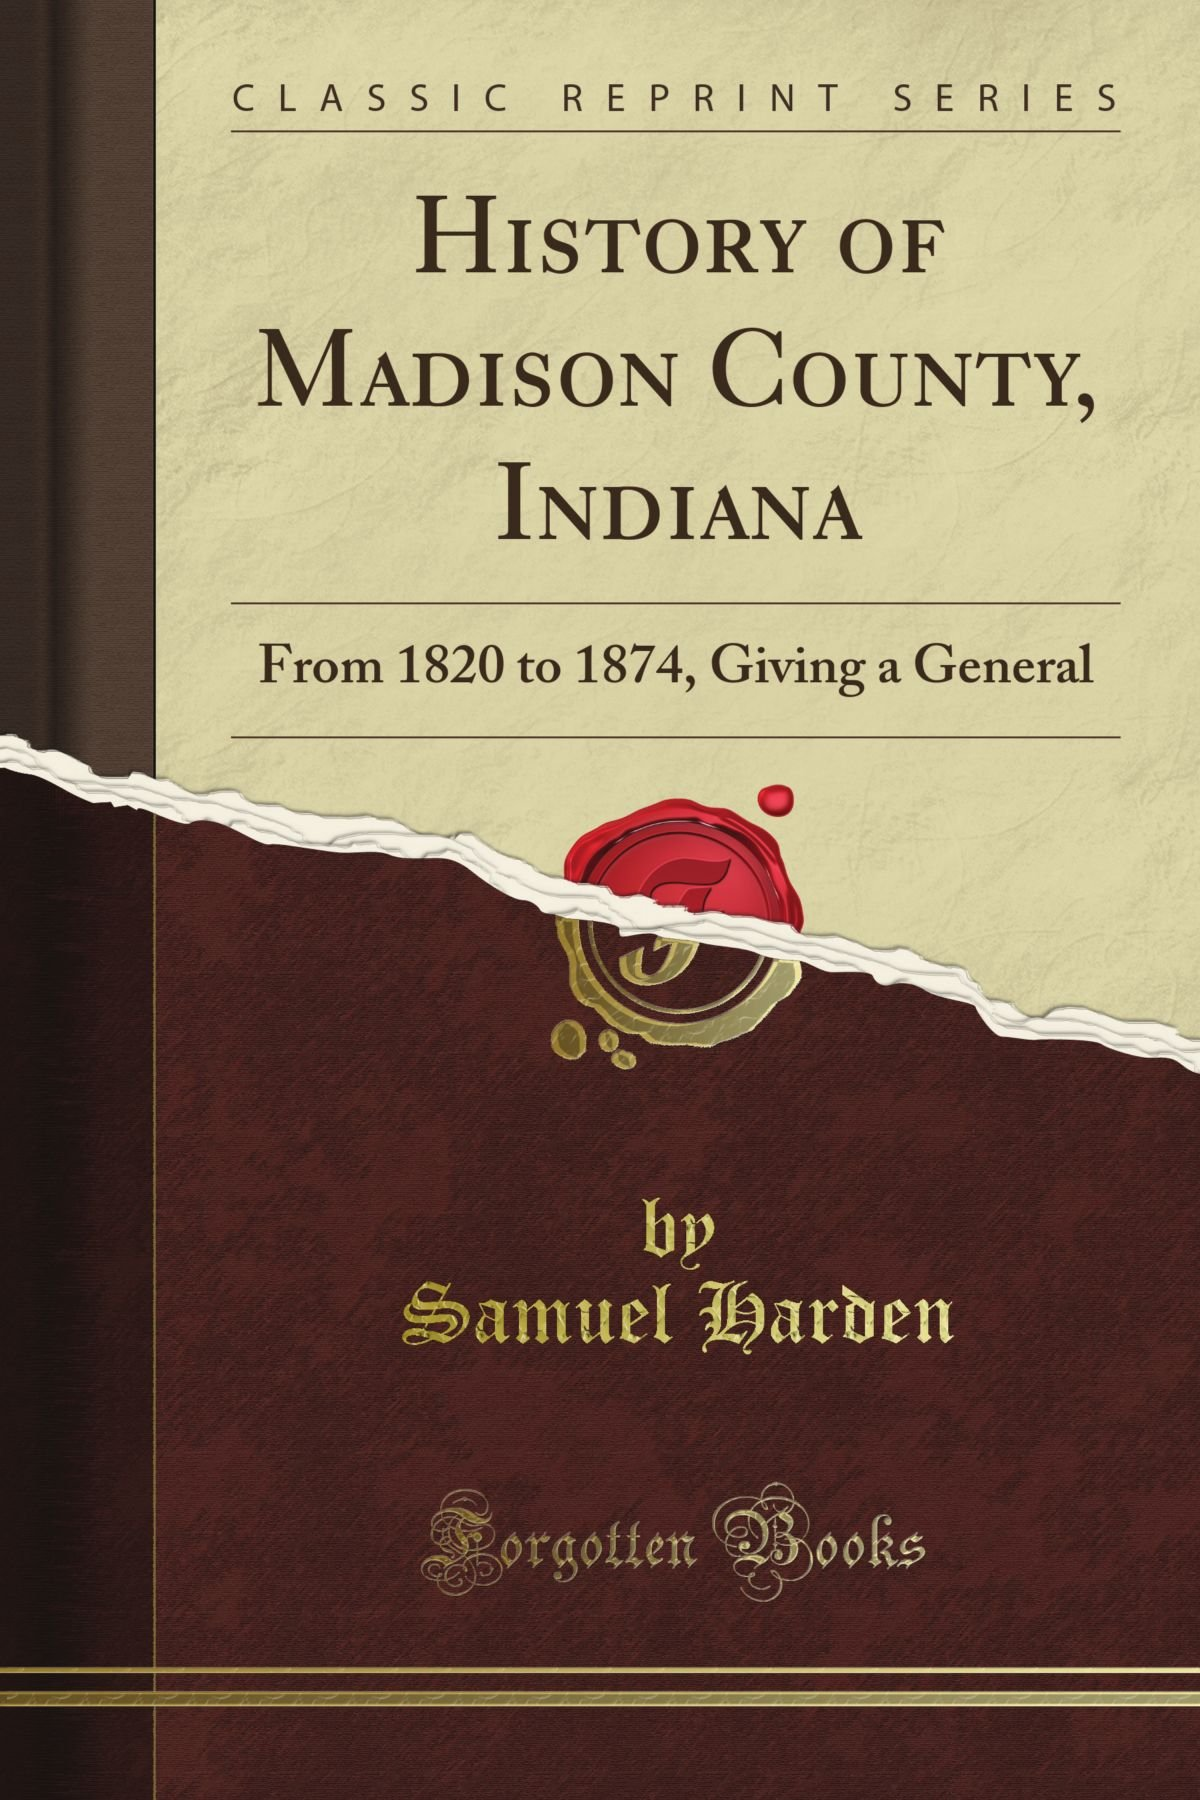 Download History of Madison County, Indiana: From 1820 to 1874, Giving a General (Classic Reprint) ebook